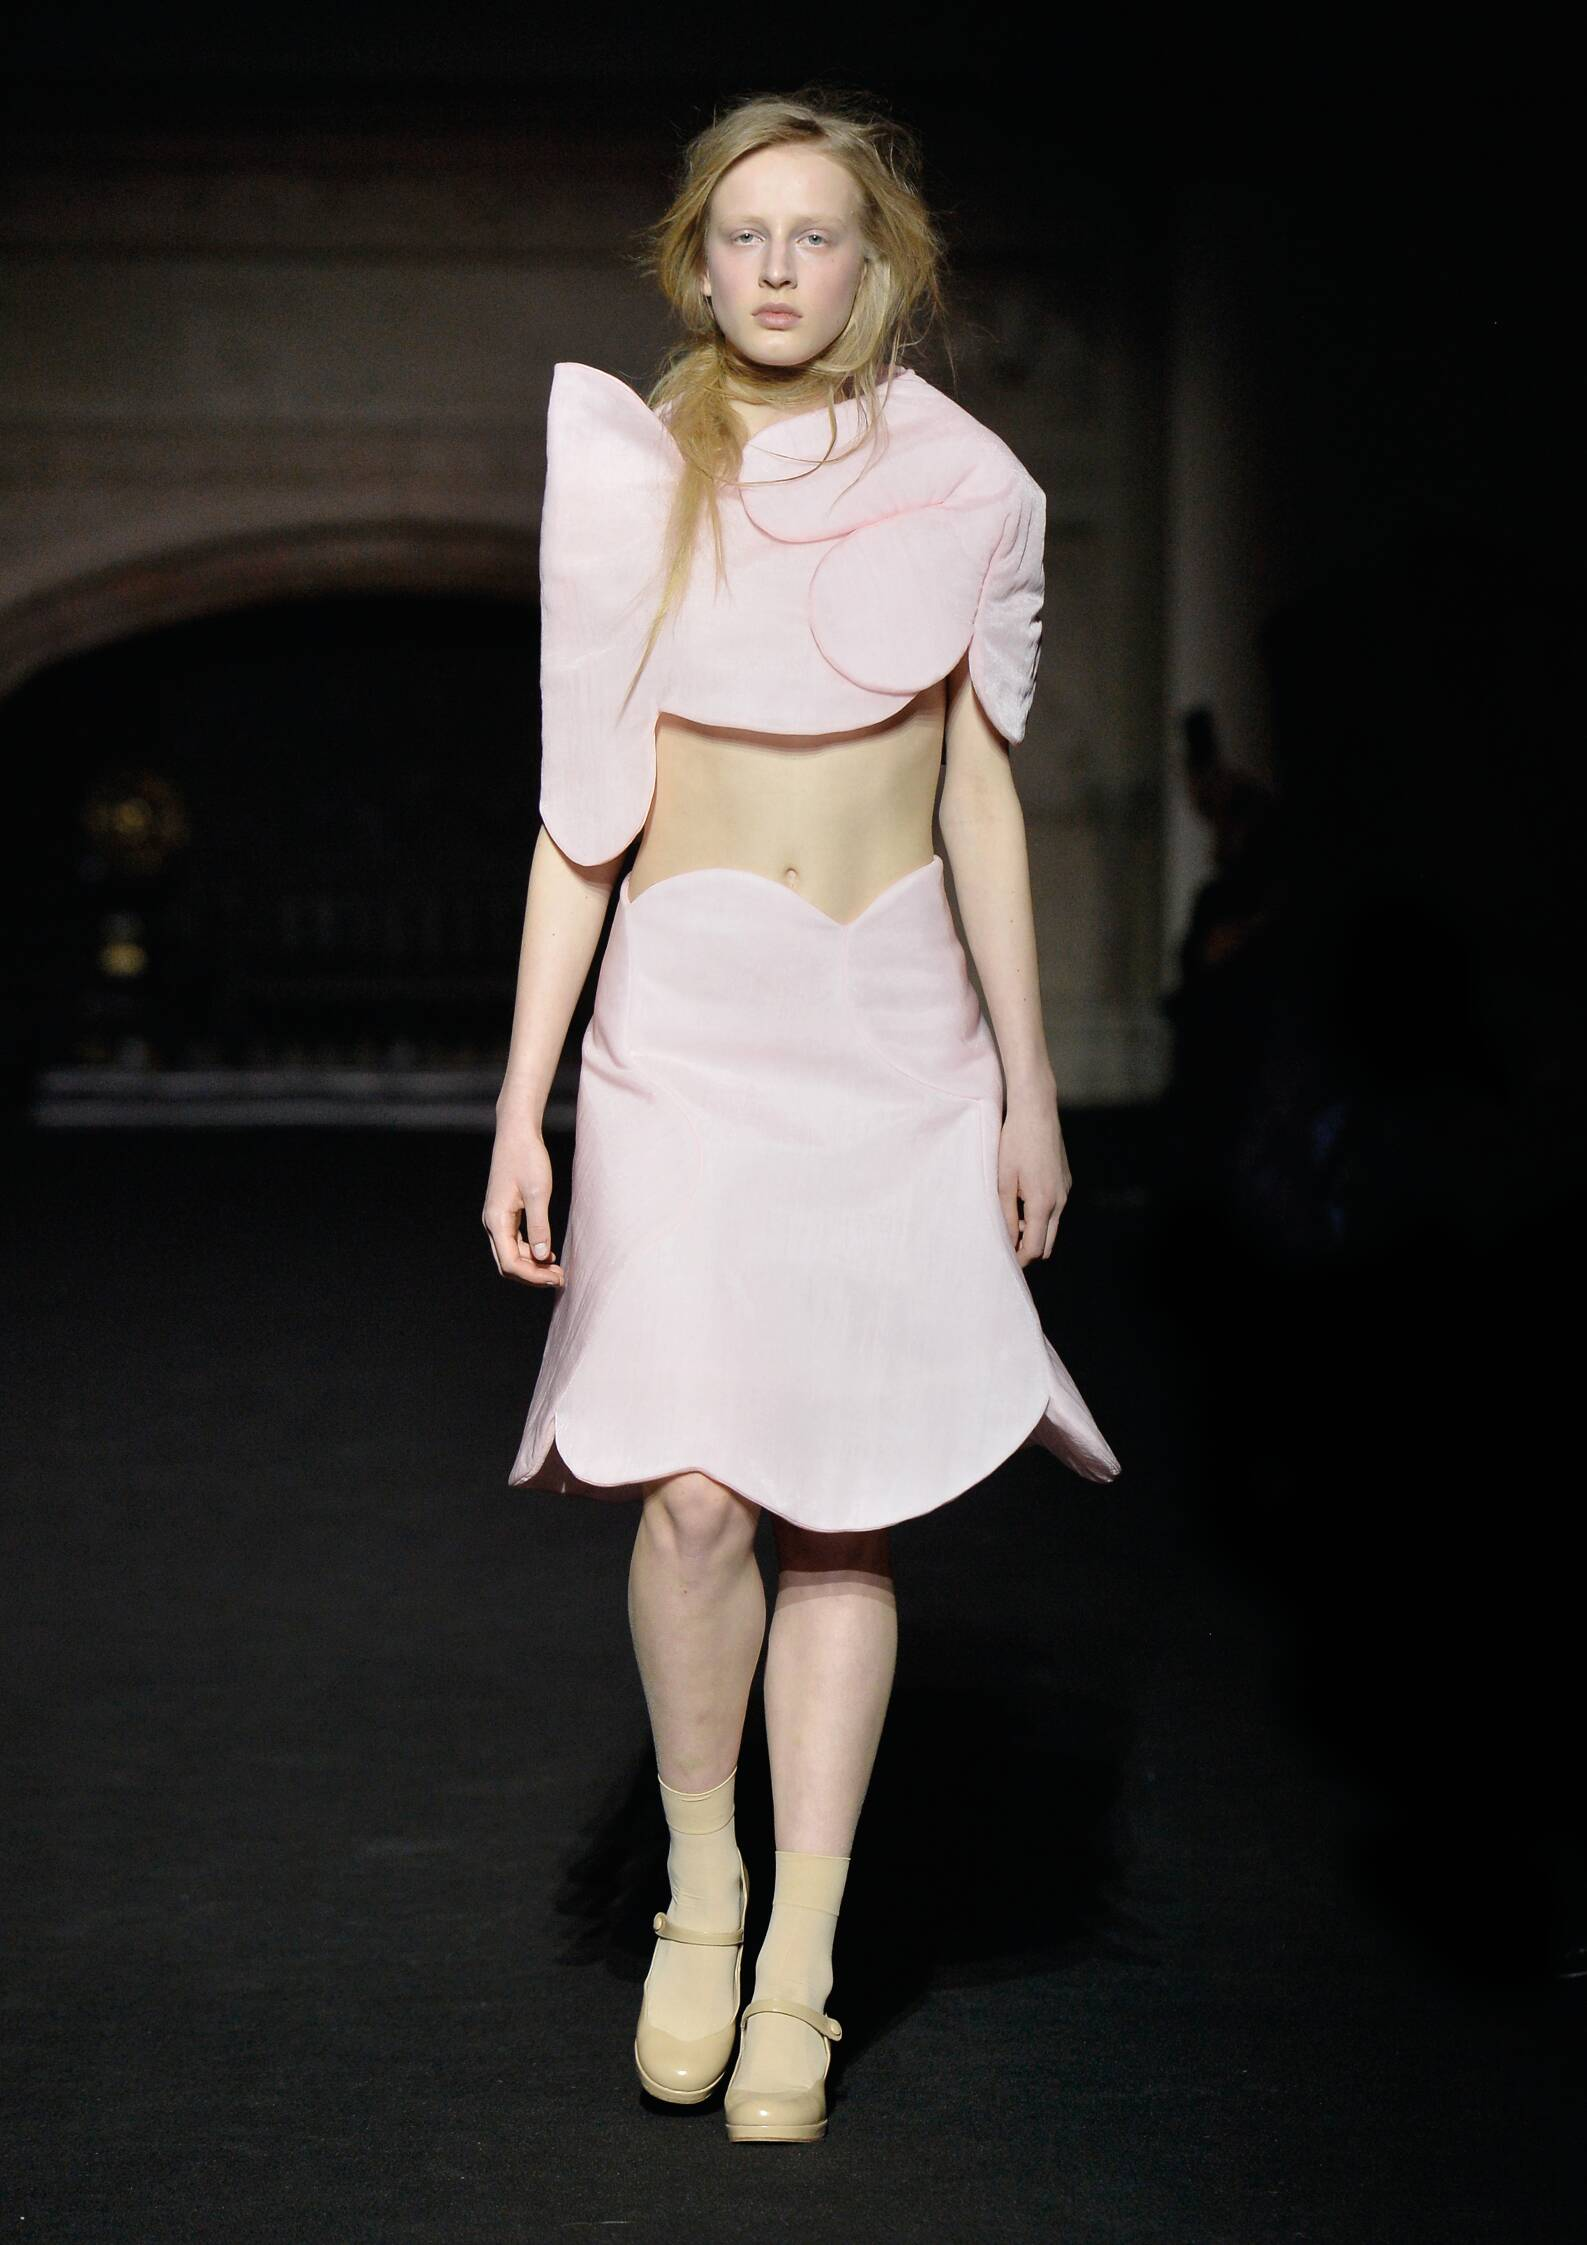 Fall Simone Rocha Collection Fashion Woman Model